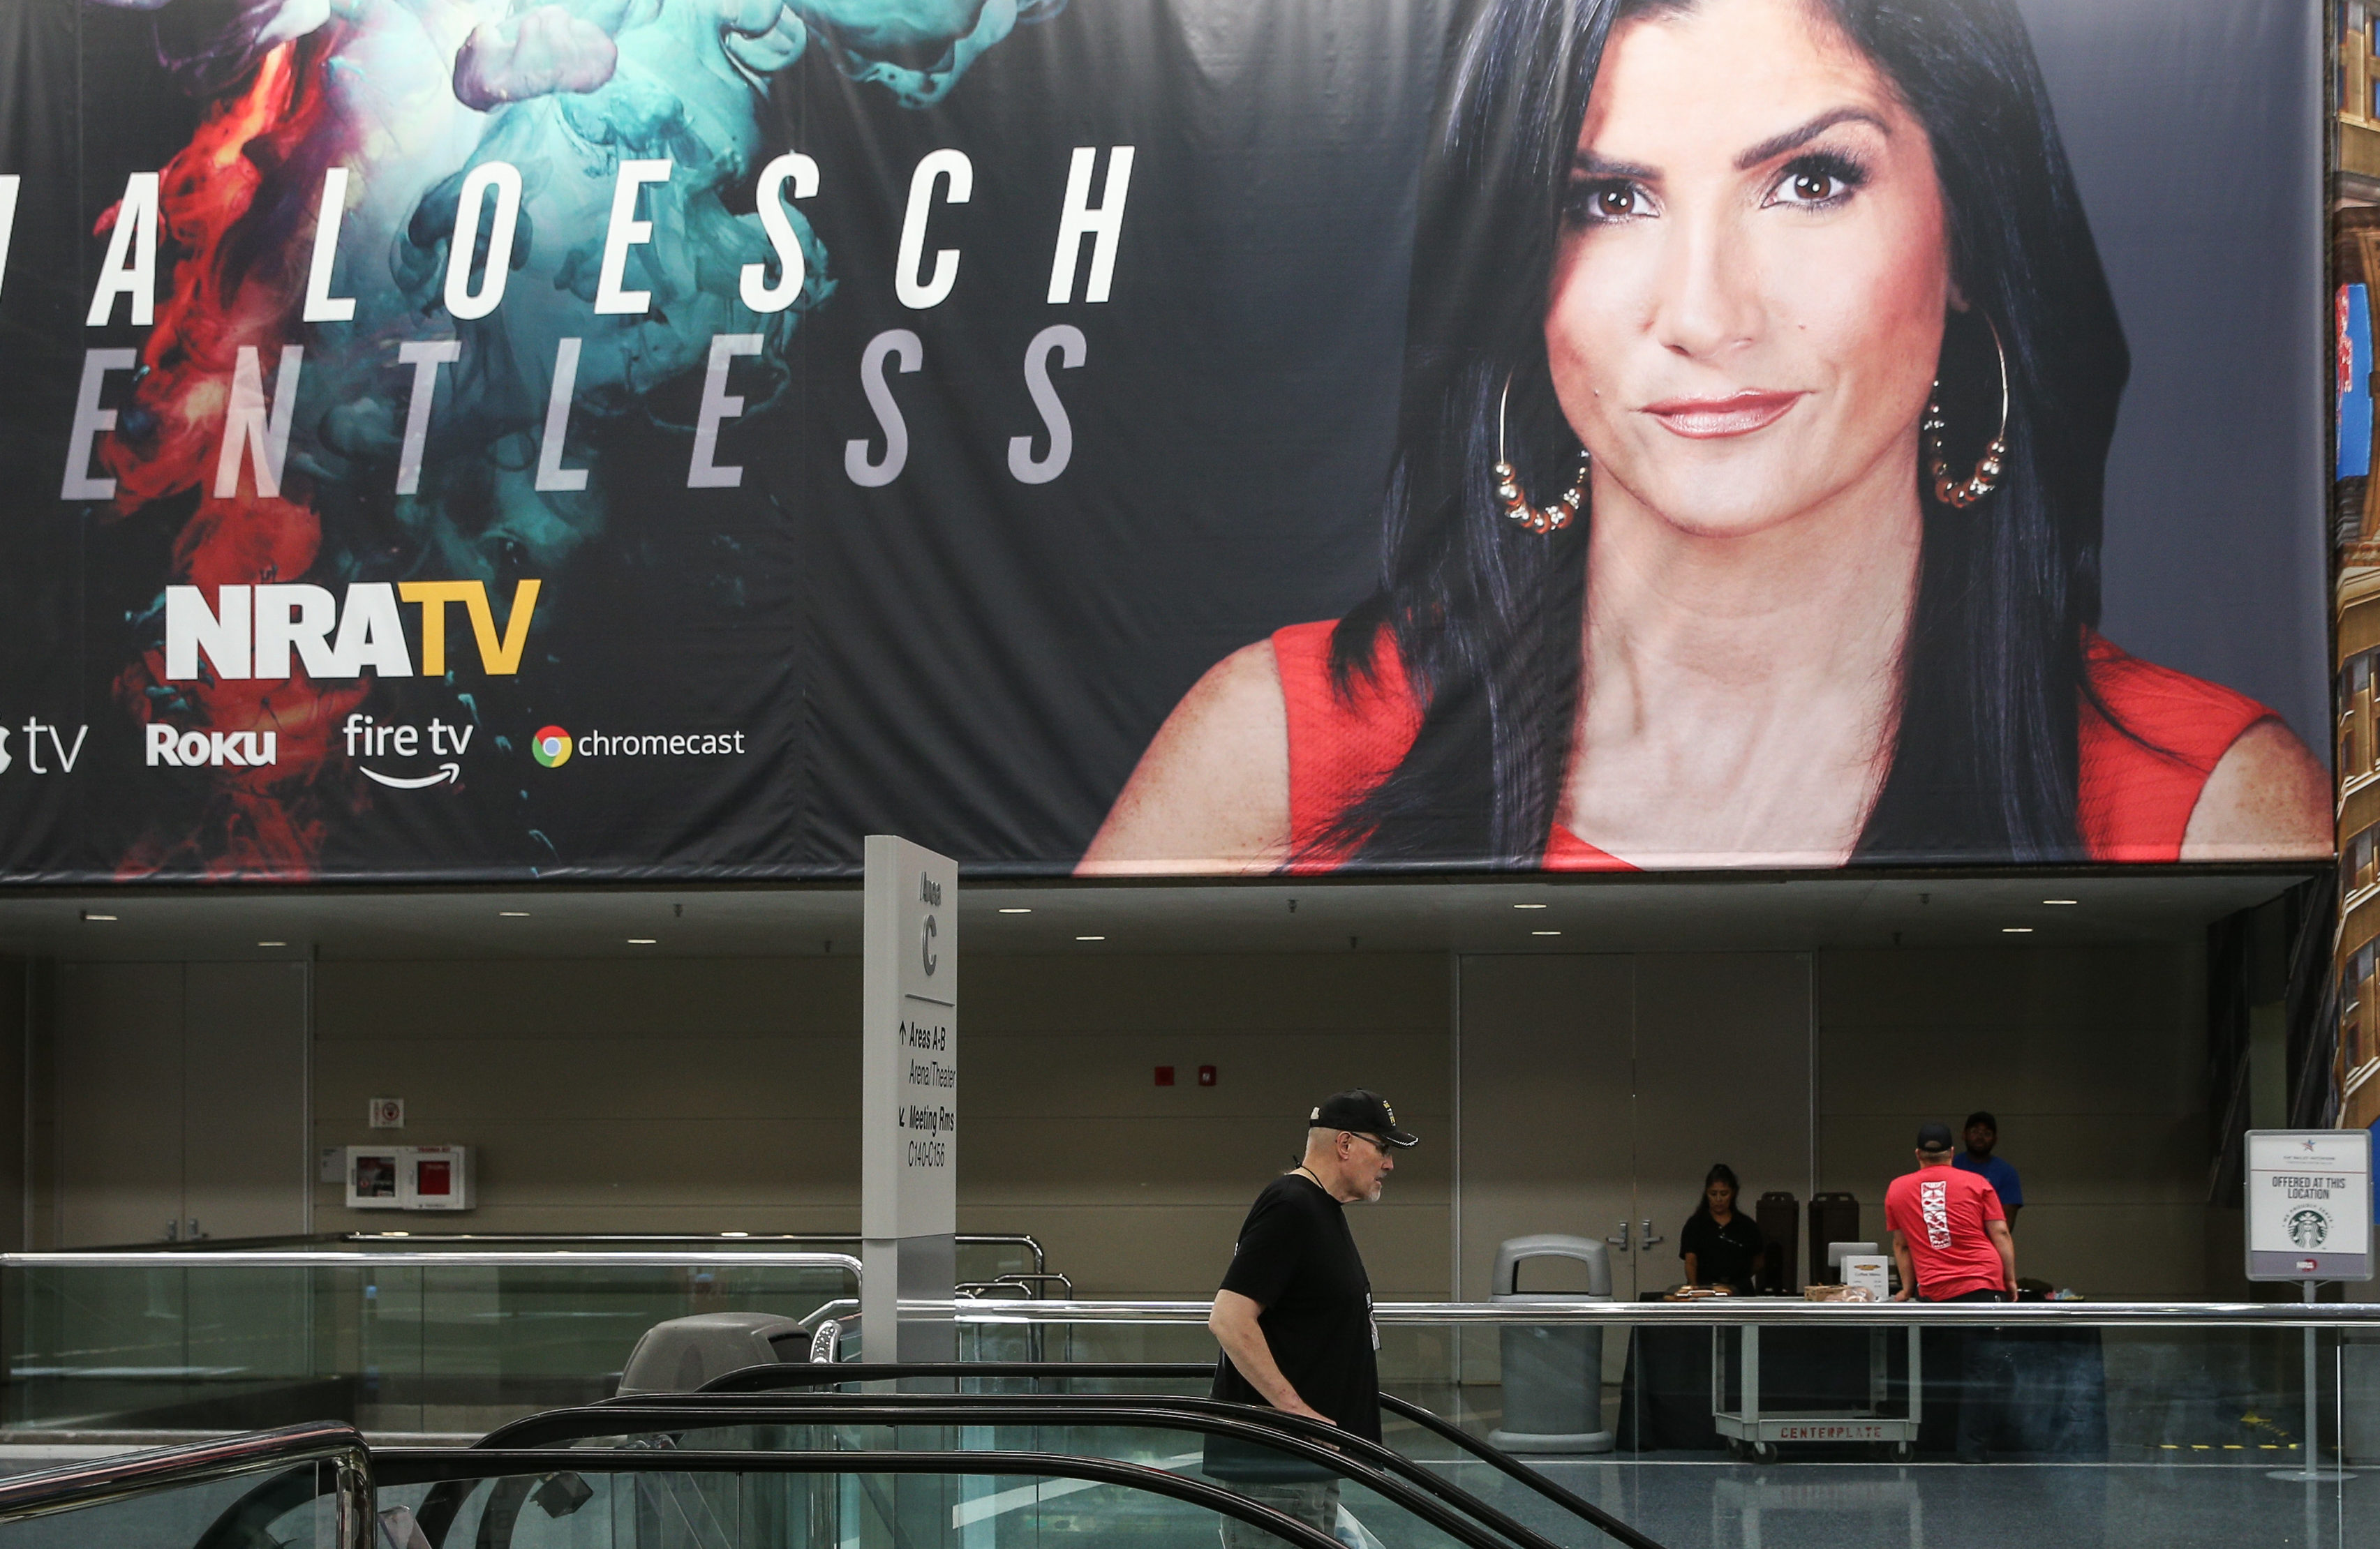 A photo of National Rifle Association spokesperson Dana Loesch decorates a wall at the Kay Bailey Hutchison Convention Center during the NRA's annual convention May 6, 2018 in Dallas, Texas. (Photo by LOREN ELLIOTT/AFP/Getty Images)